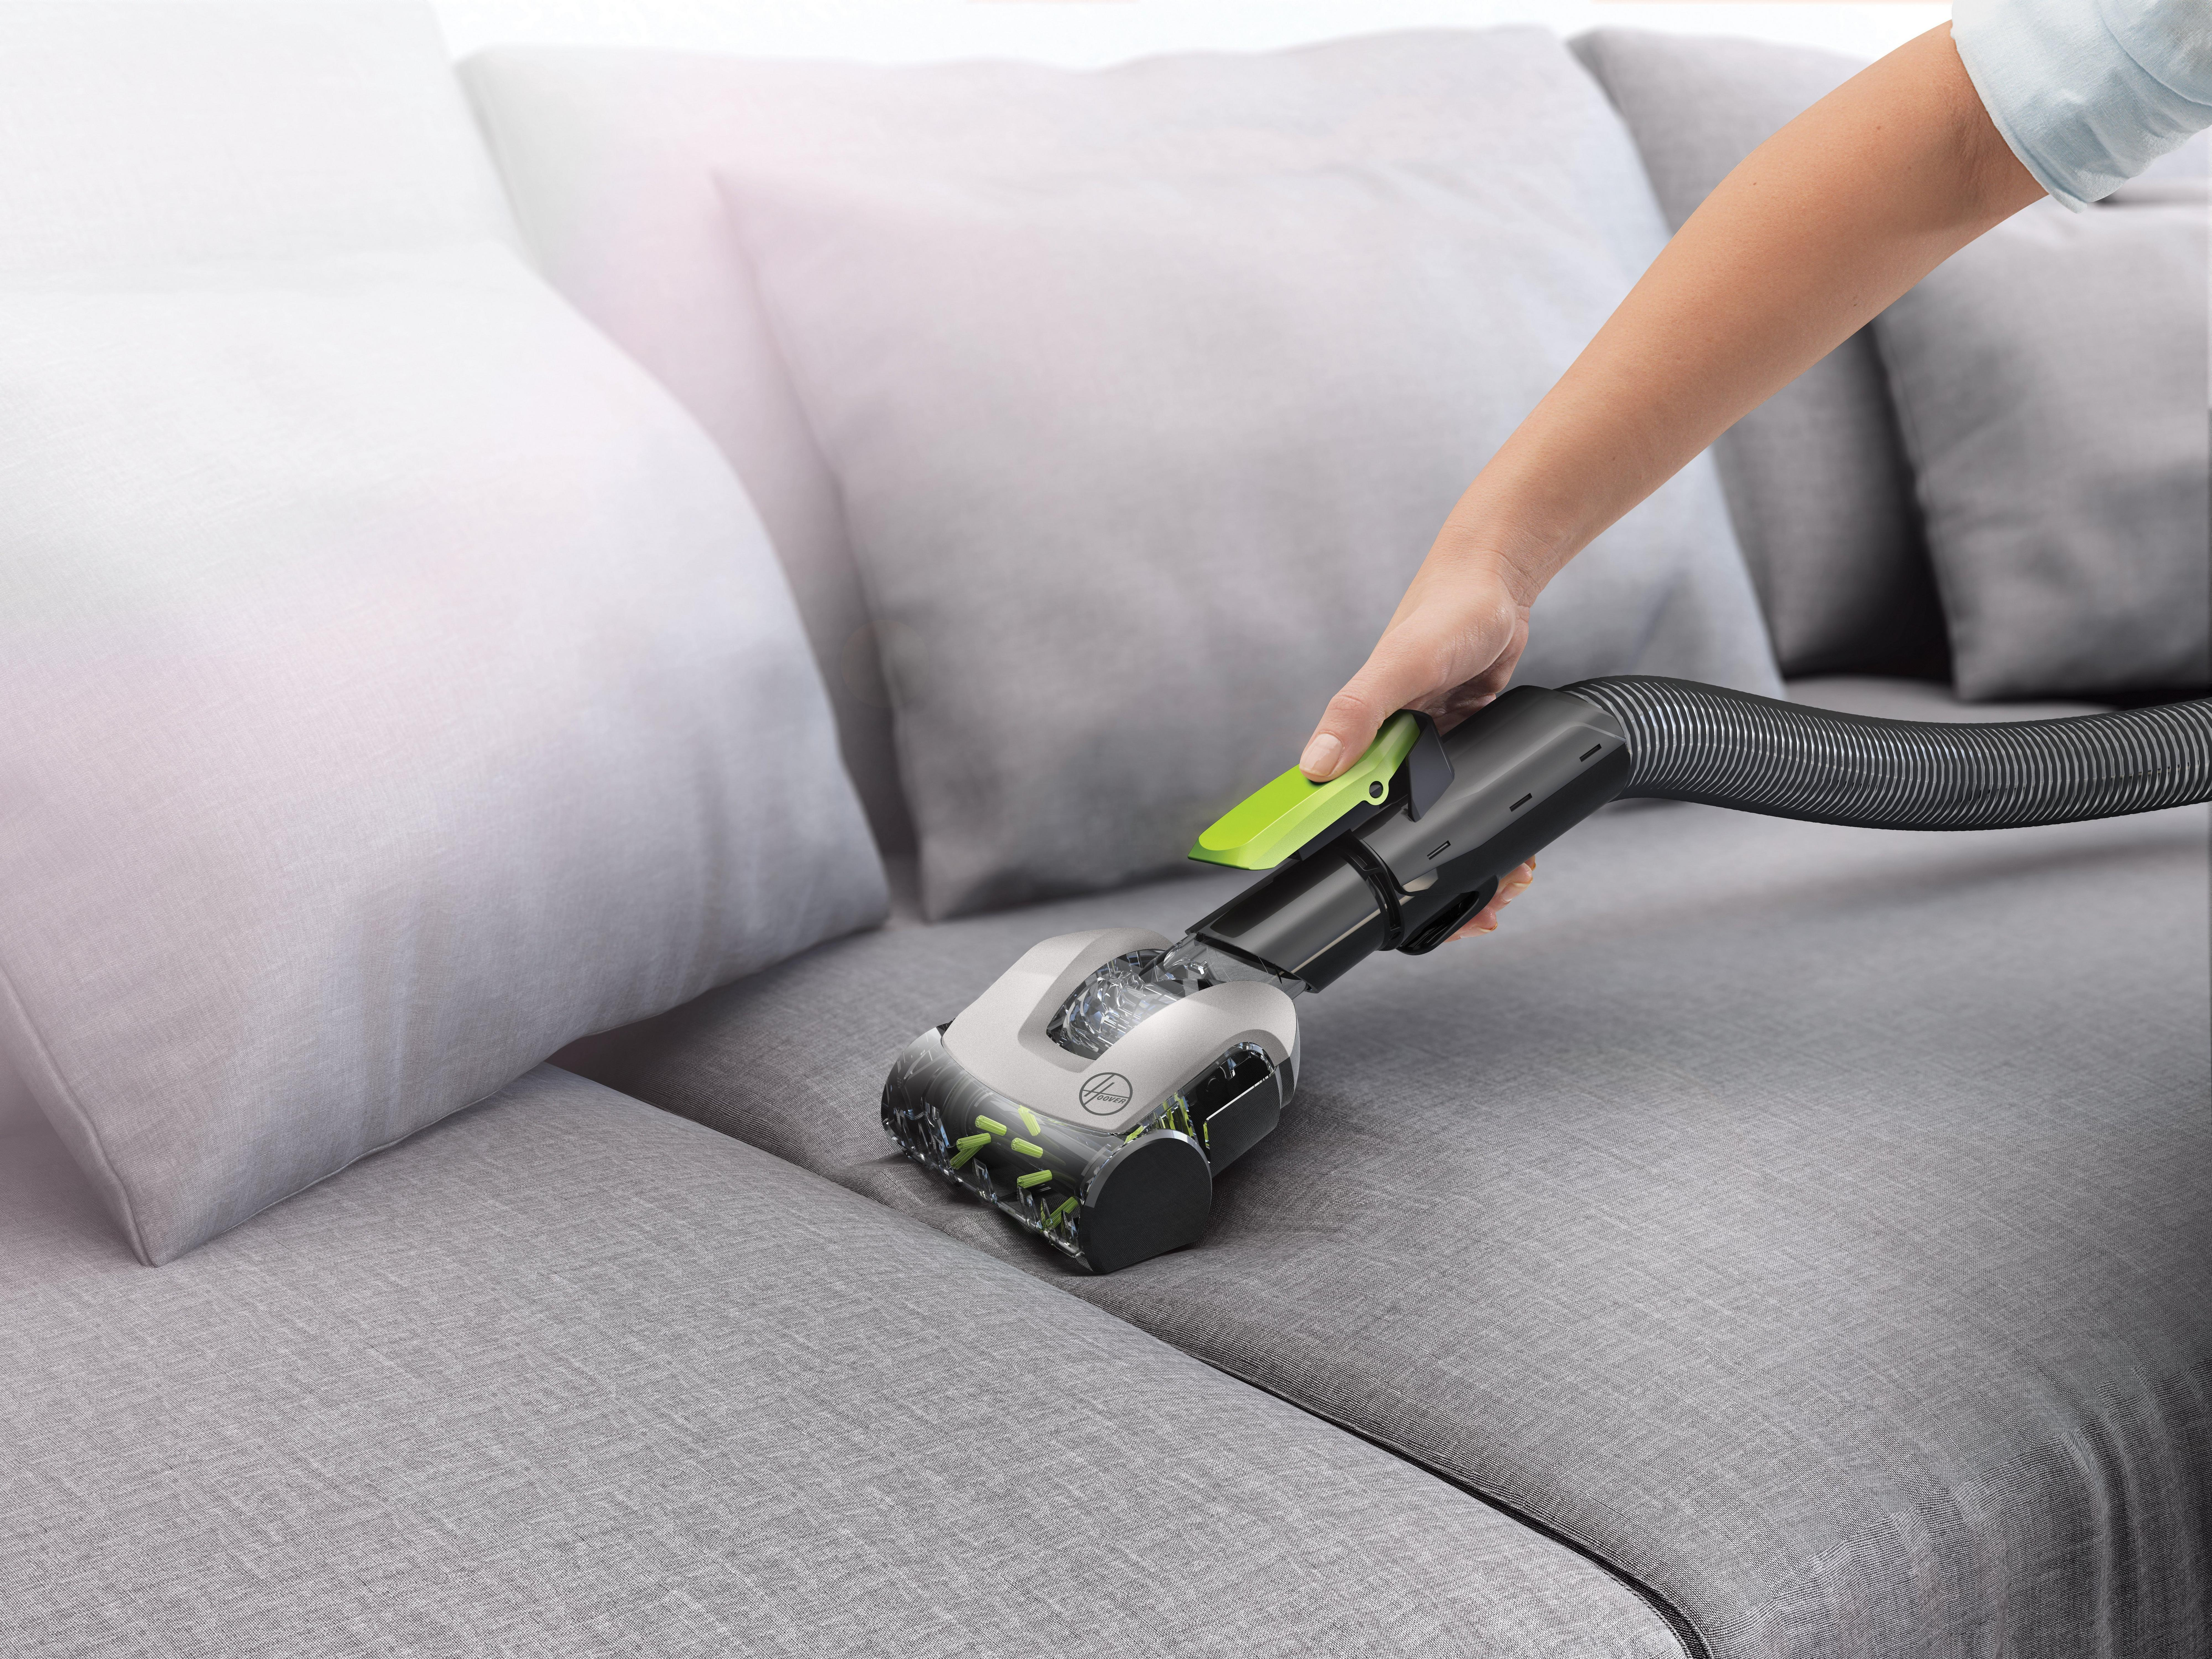 Air Lift Deluxe Upright Bagless Vacuum Cleaner6